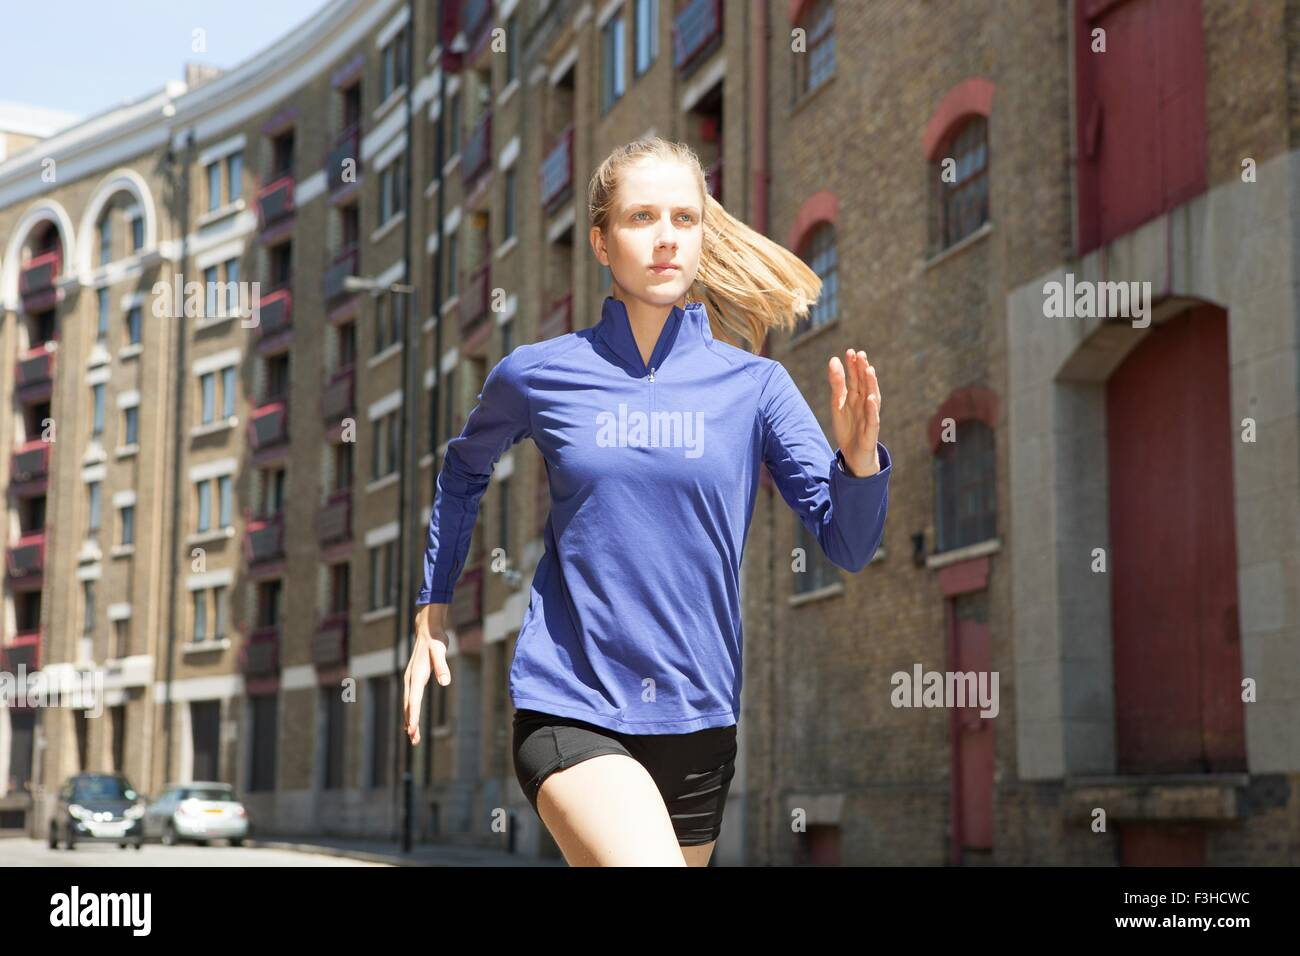 Runner jogging past building block, Wapping, London - Stock Image